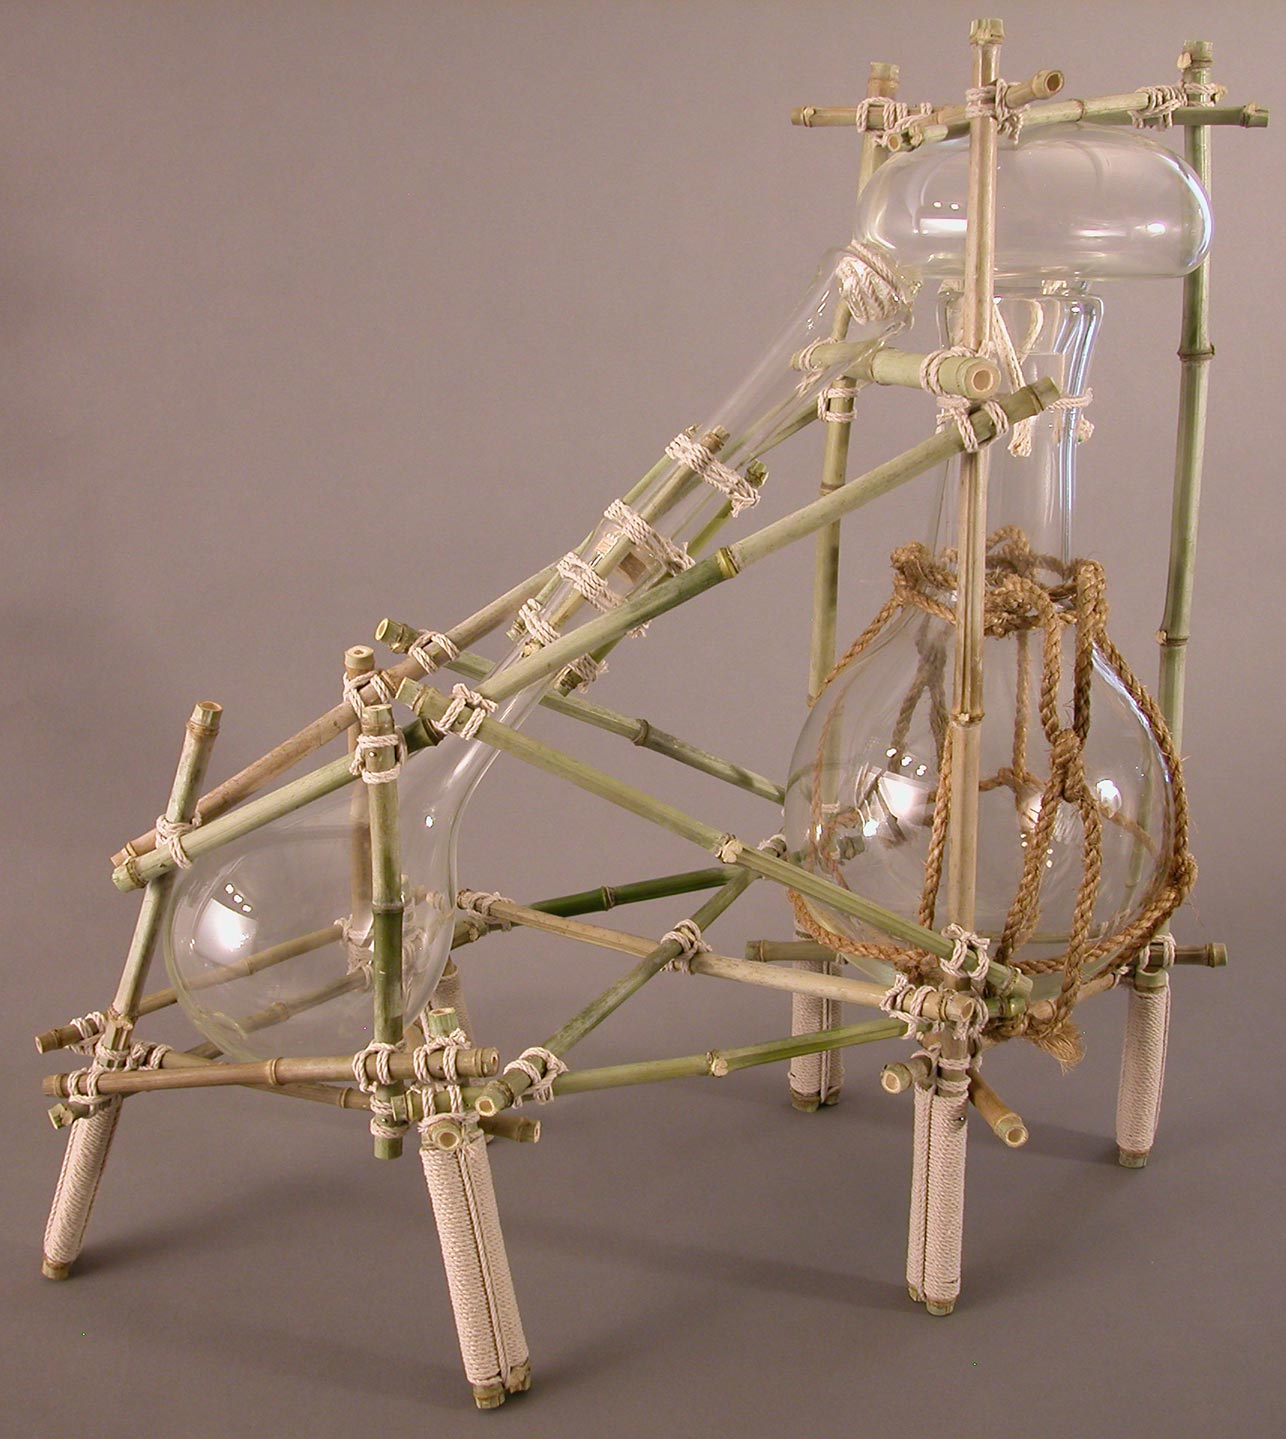 Bamboo and glassware sculpture, set up to display distillation.